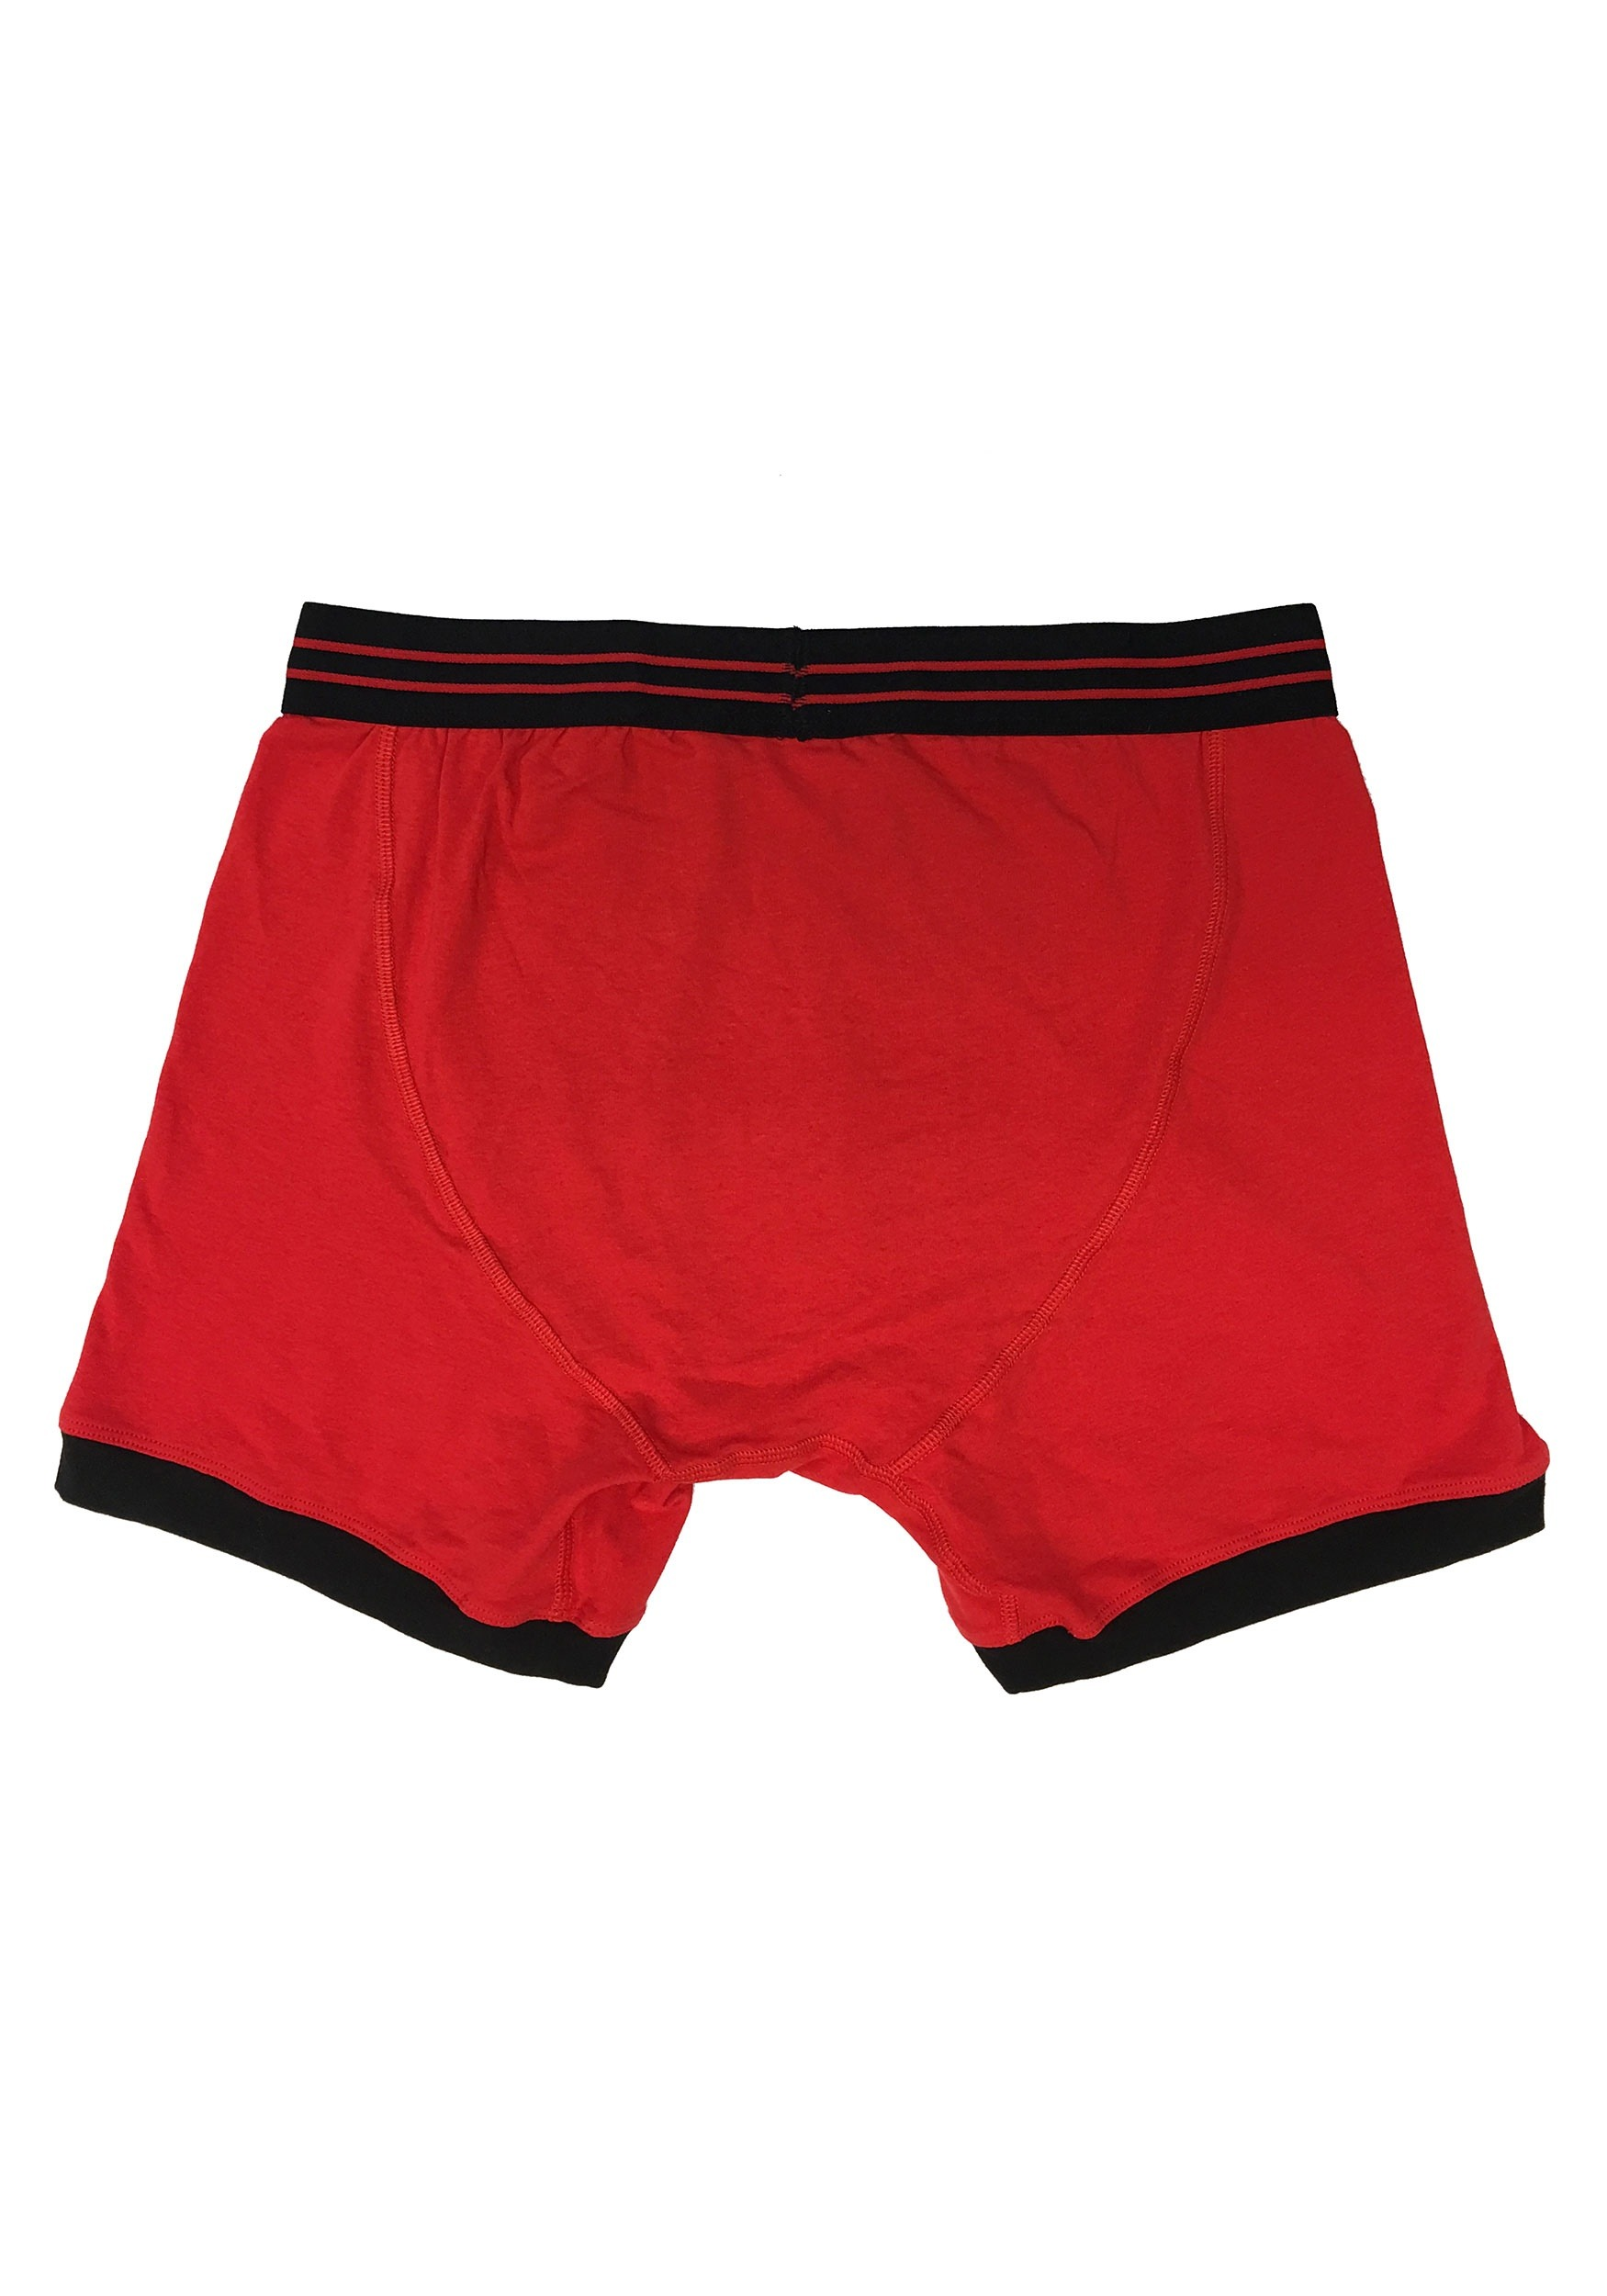 Incredibles 2 Boxer Brief 3 Pack For Men